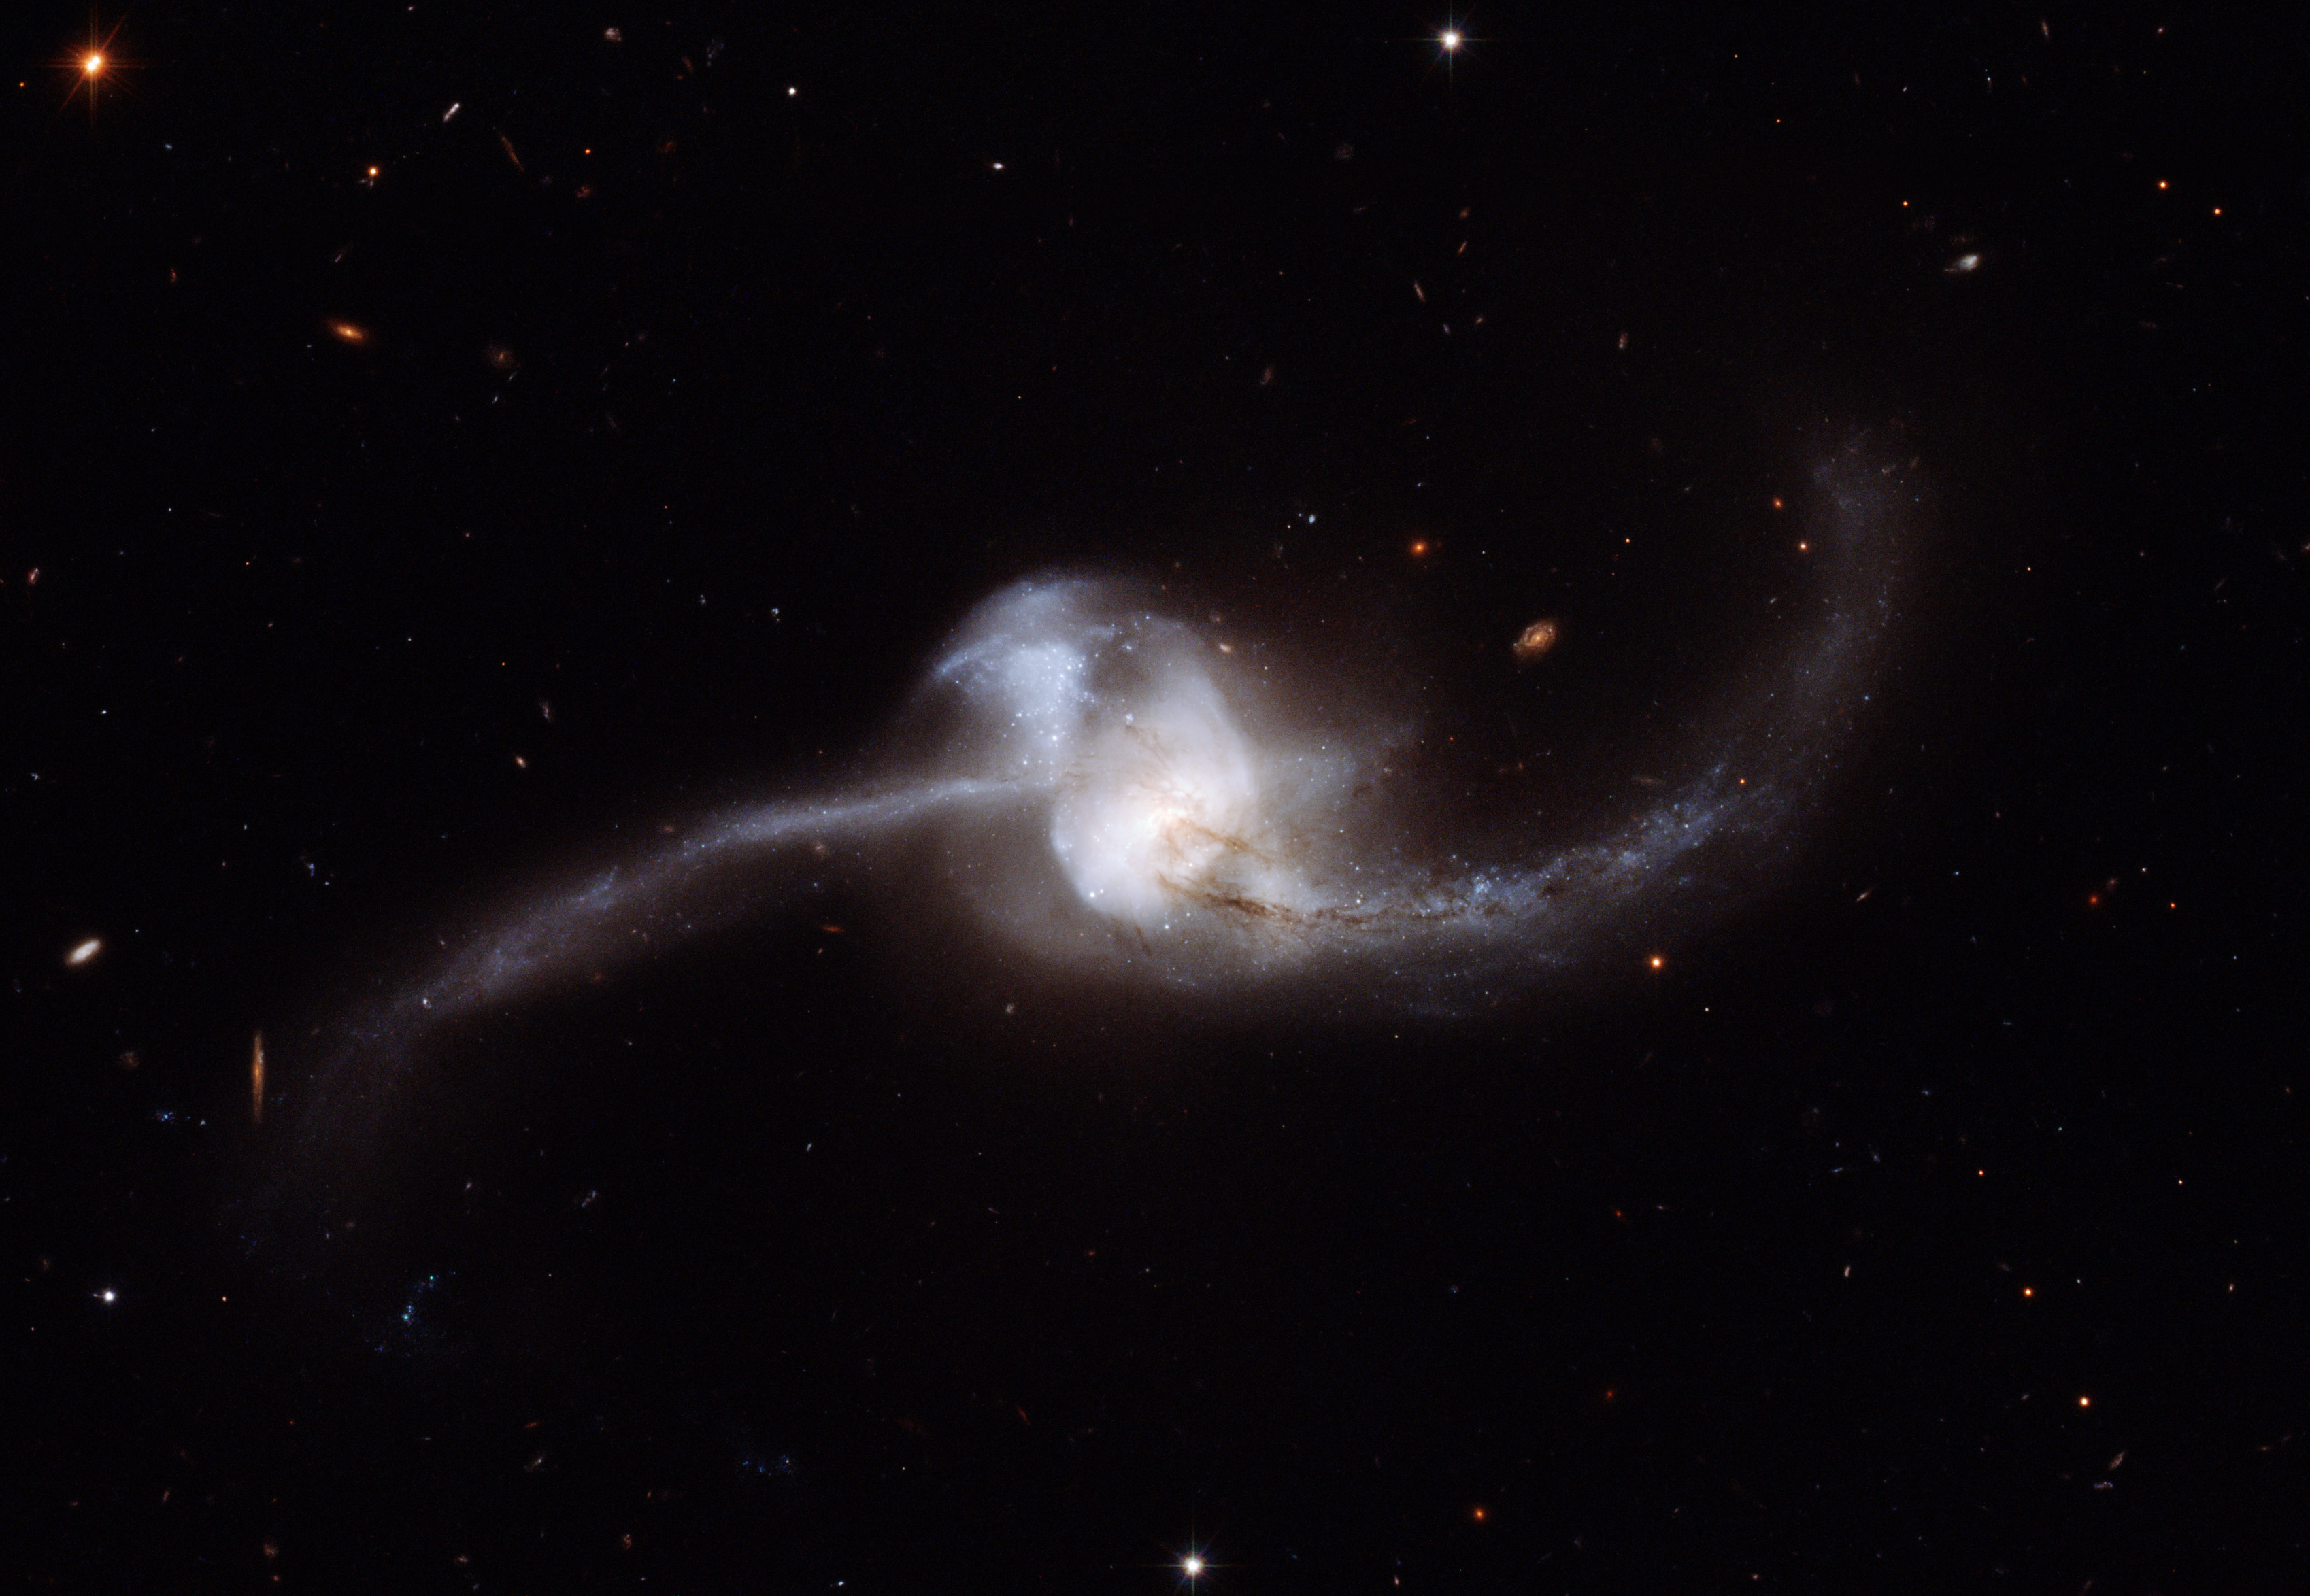 11/09/09: NGC 2623: Galaxy Merger from Hubble Ngc2623_hst_big